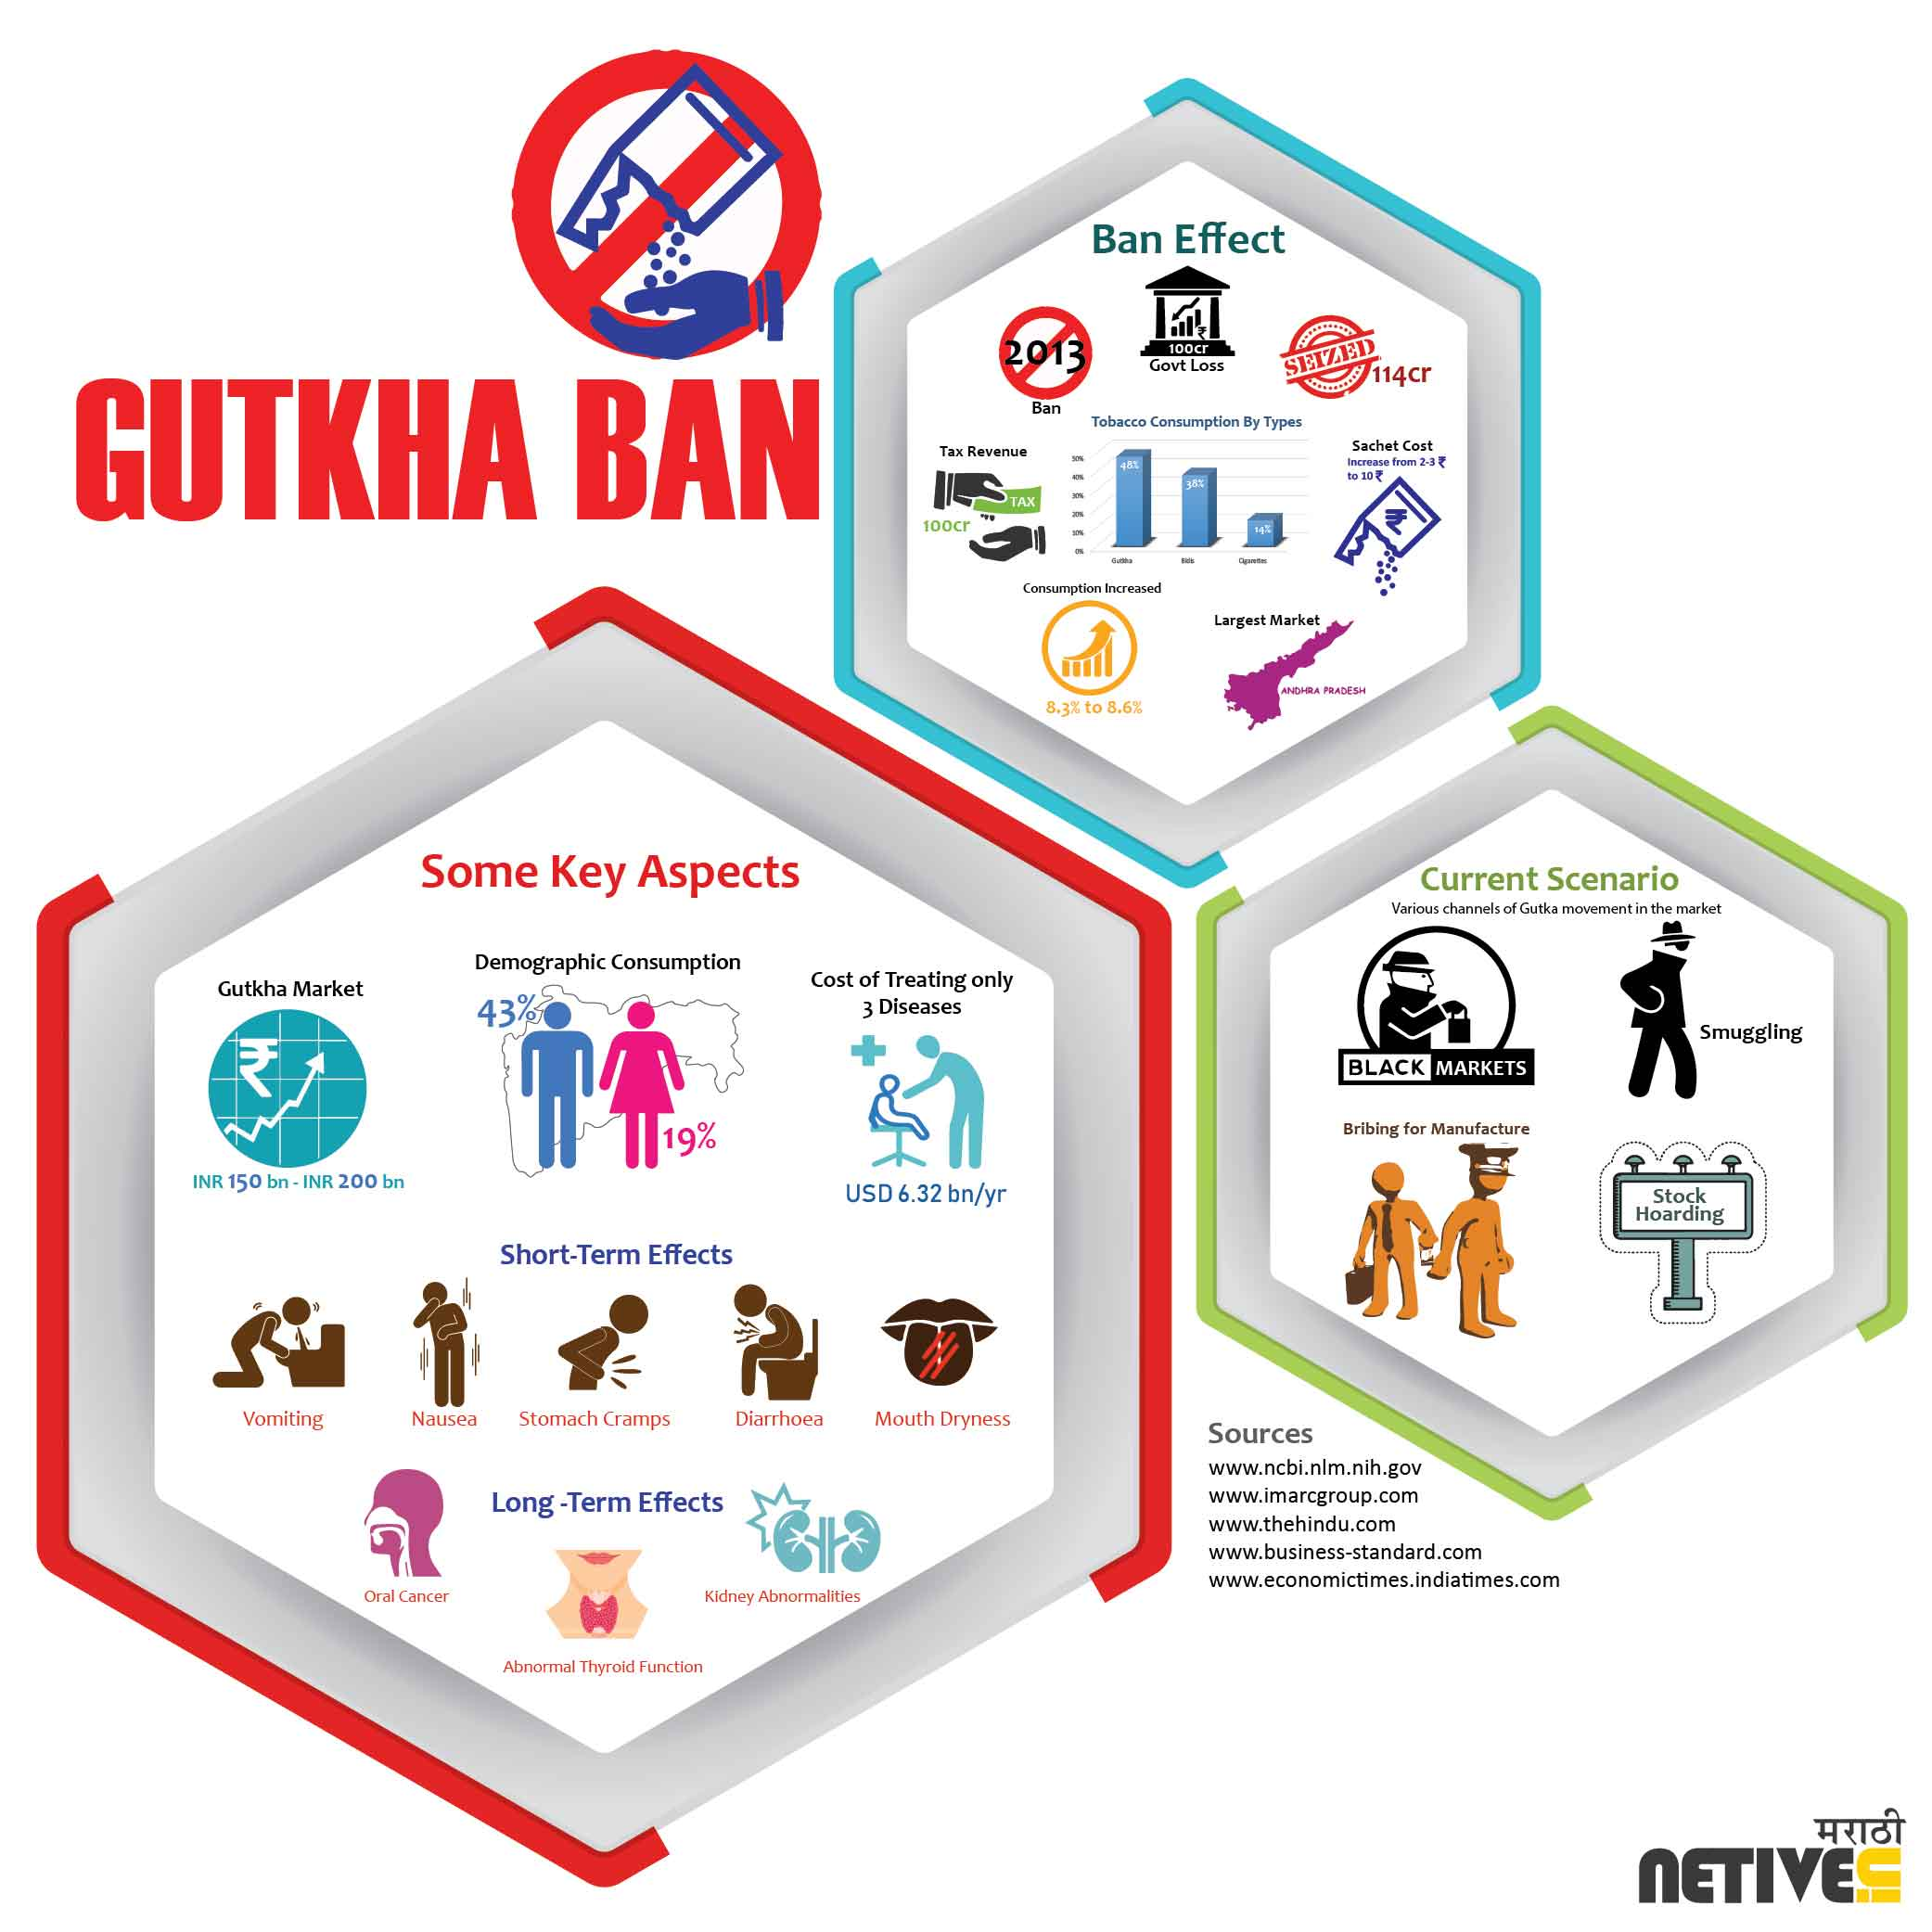 Gutka ban and the current scenario